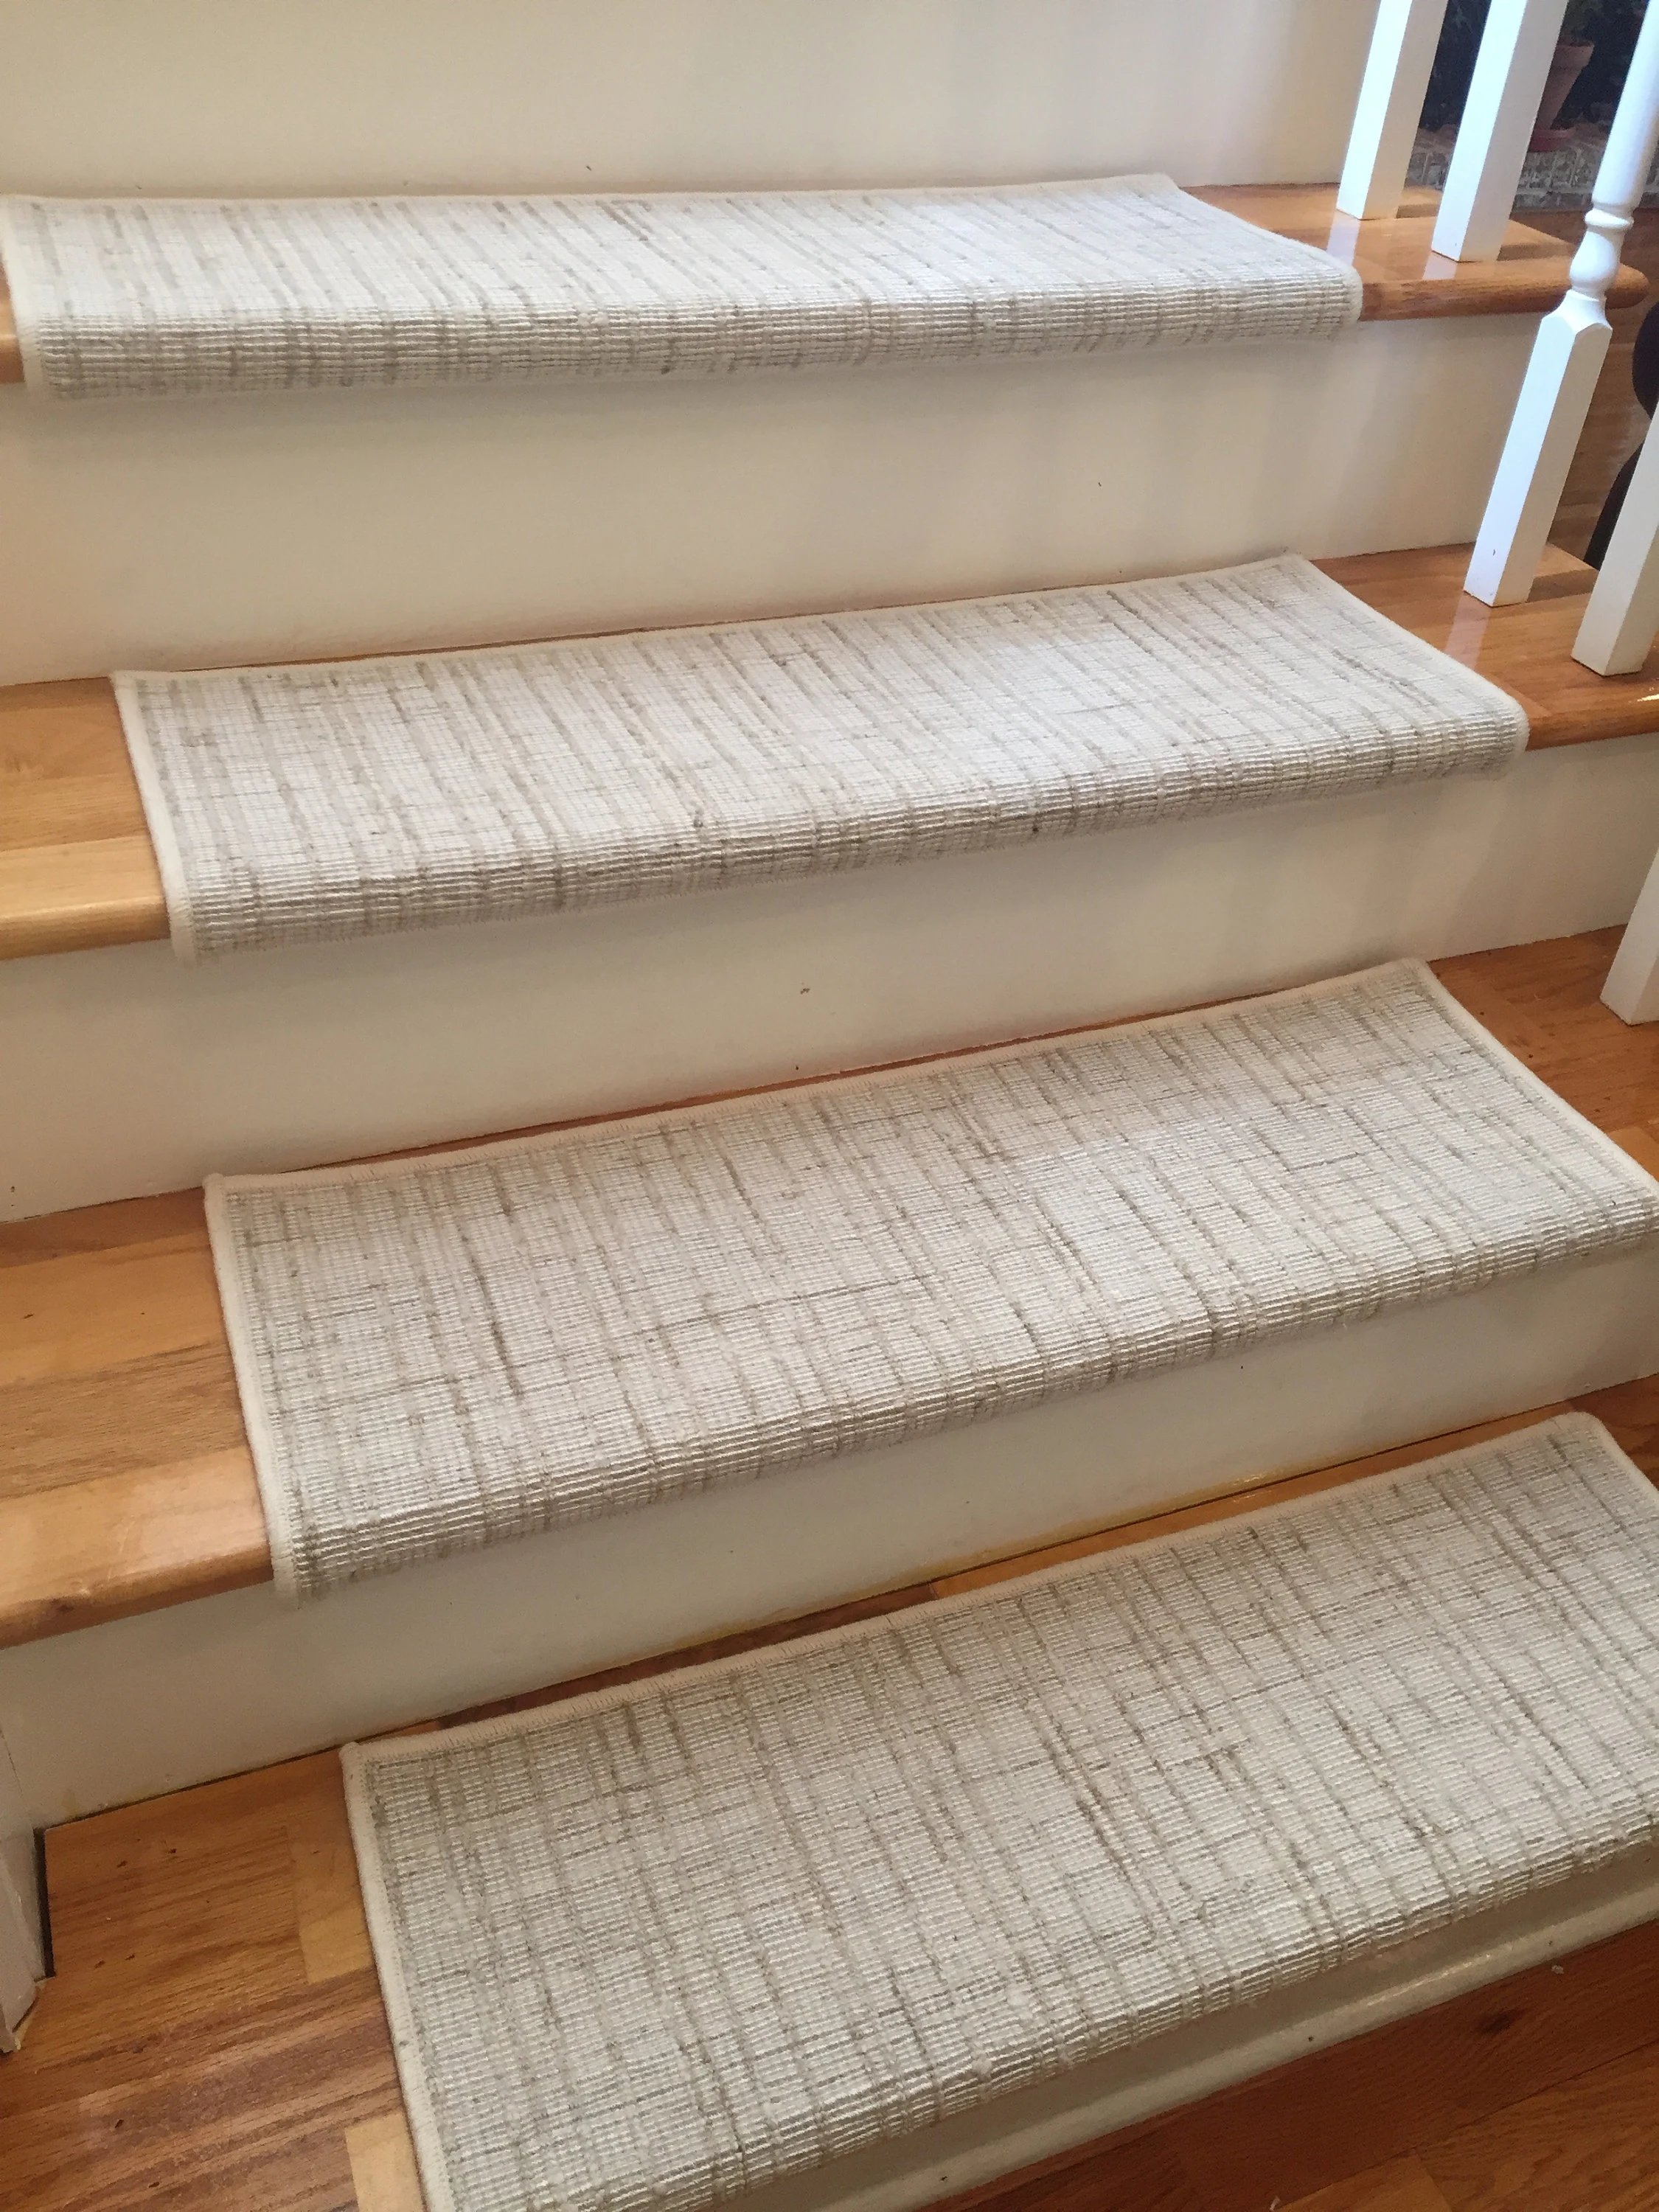 Texture Weave Ivory And Other Colors True Bullnose™ Padded   True Bullnose Stair Treads   Rug Runner   Stair Runner   Flooring   Basement Stairs   Comfort Safety